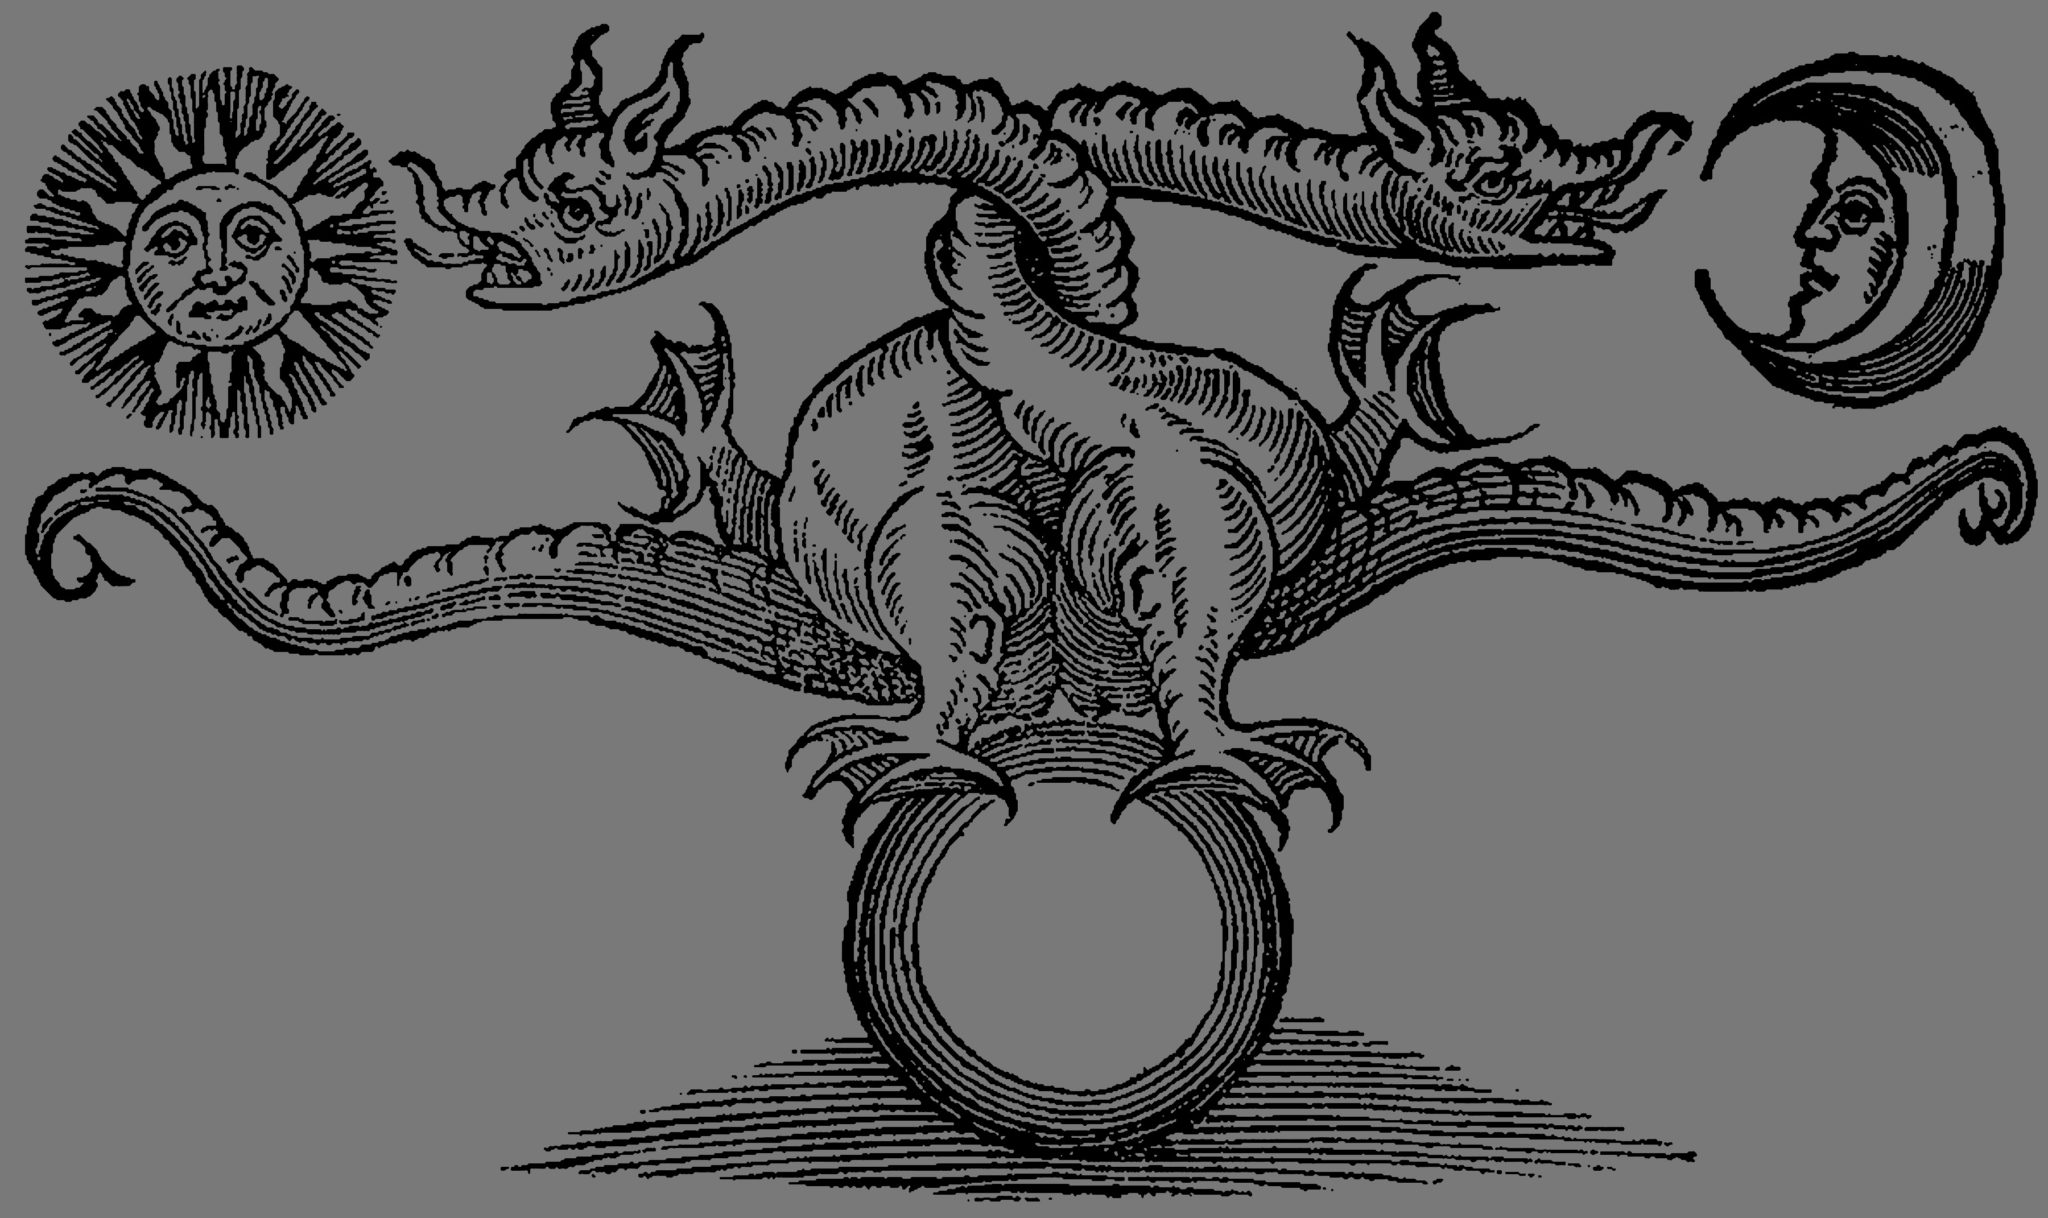 Alchemical dragon t shirt design from Closet of Mysteries